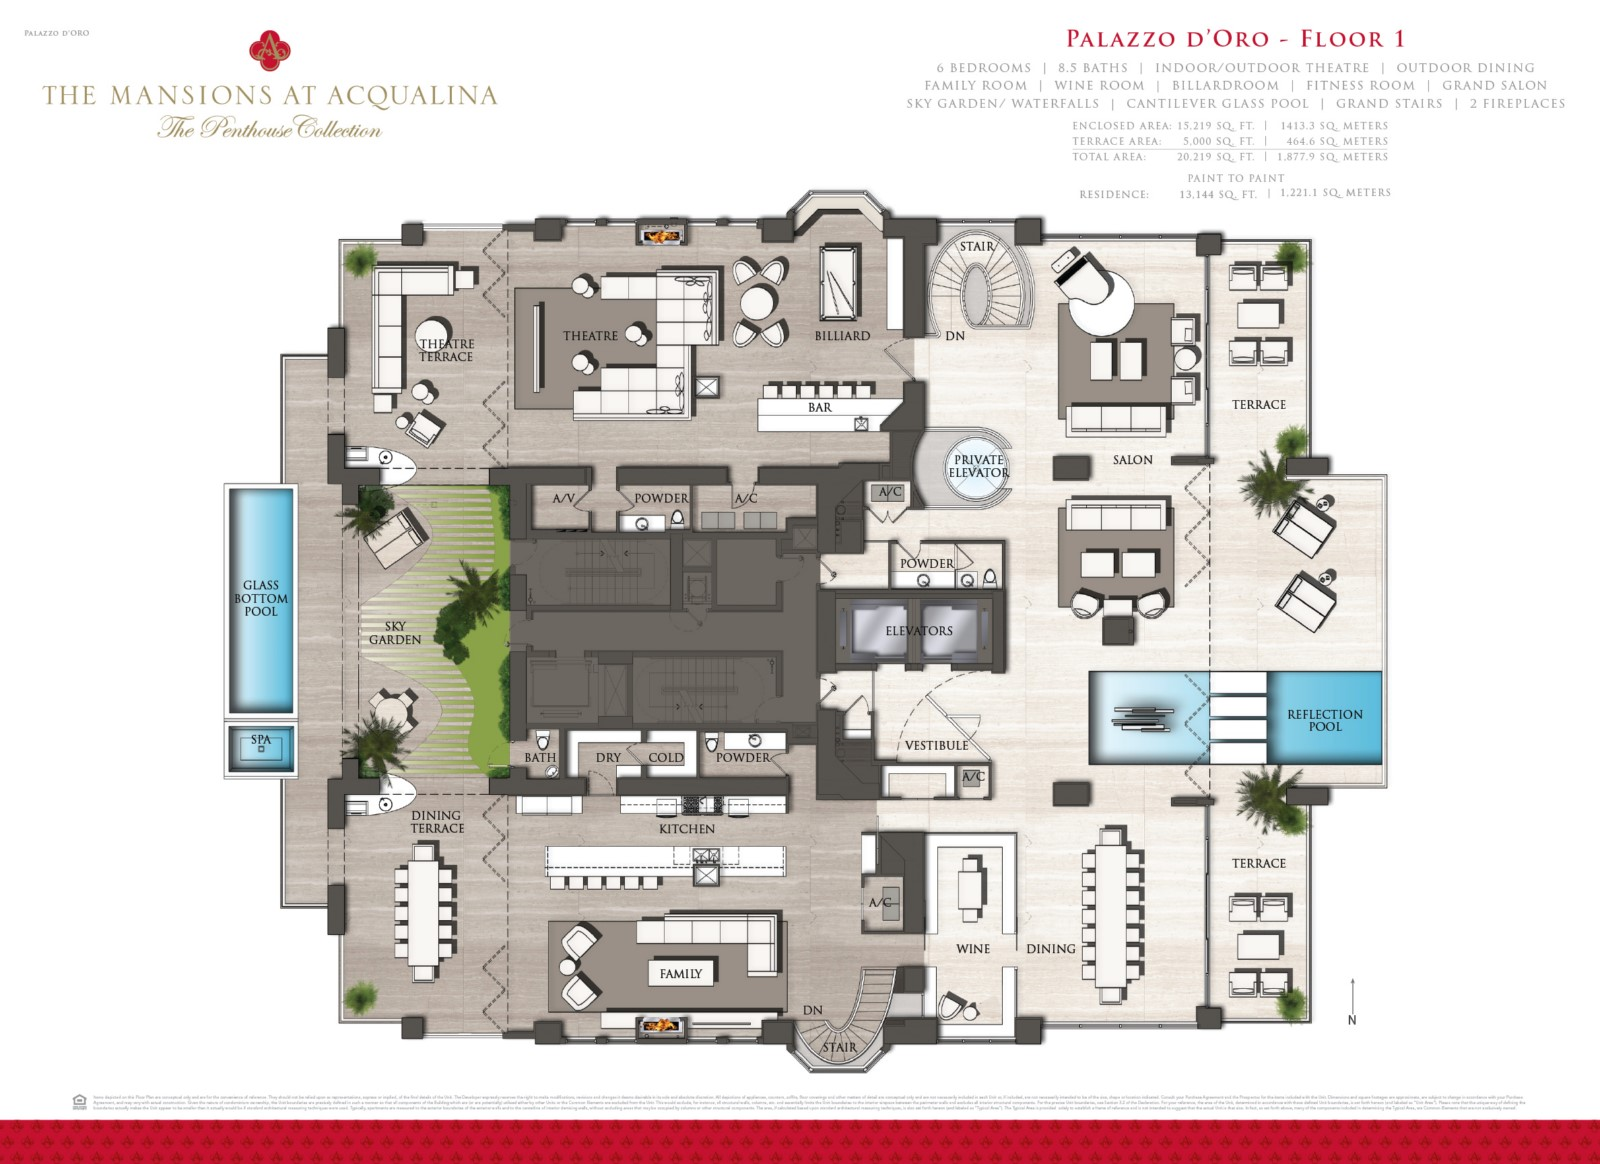 Mansions at Acqualina - Floorplan 1